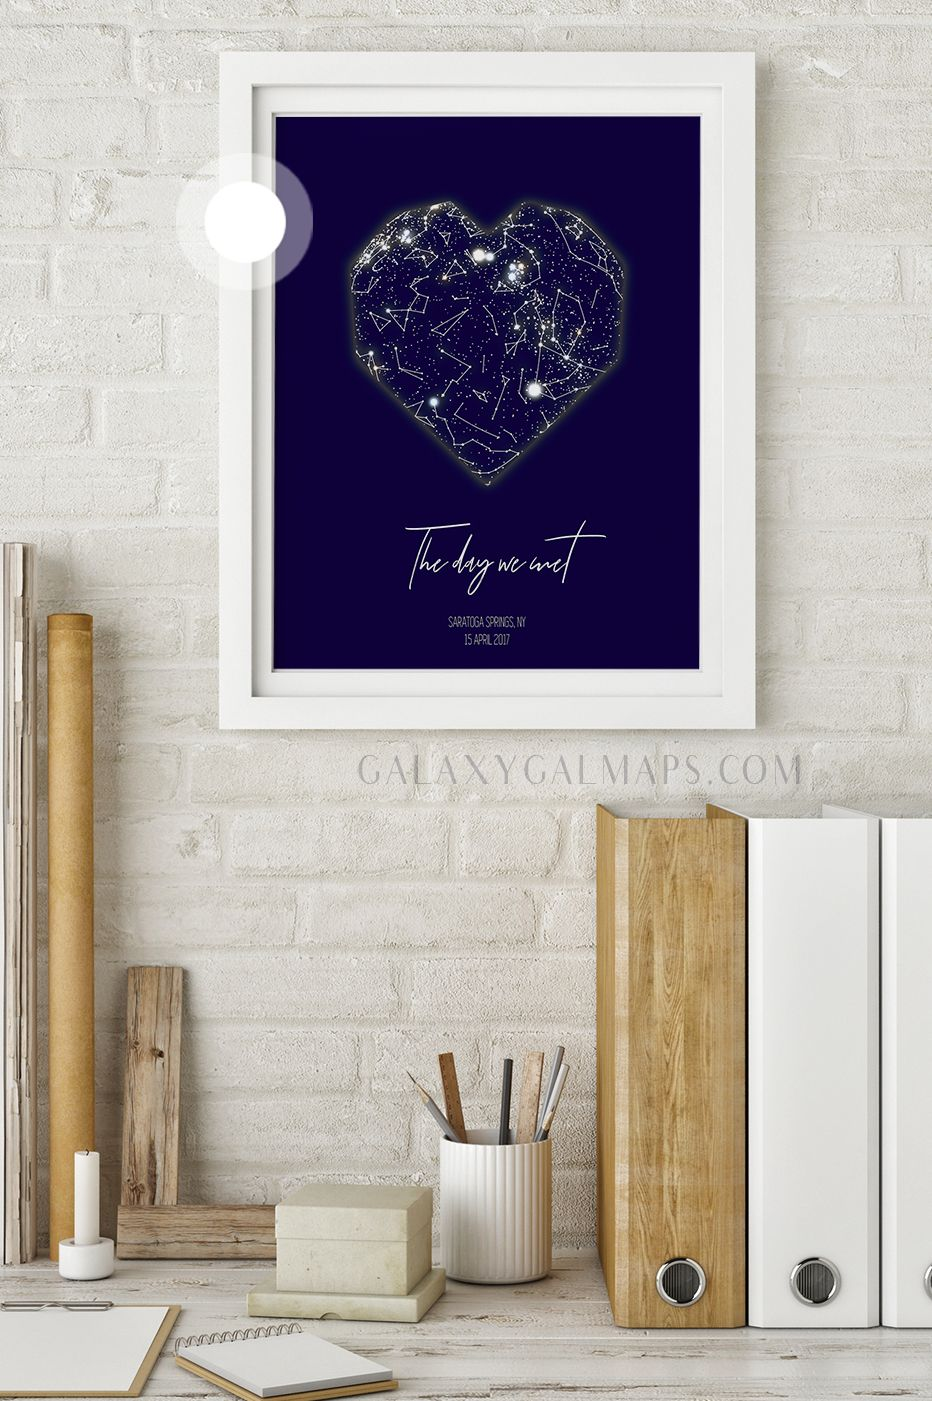 Personal star map by date and location night sky wall art best